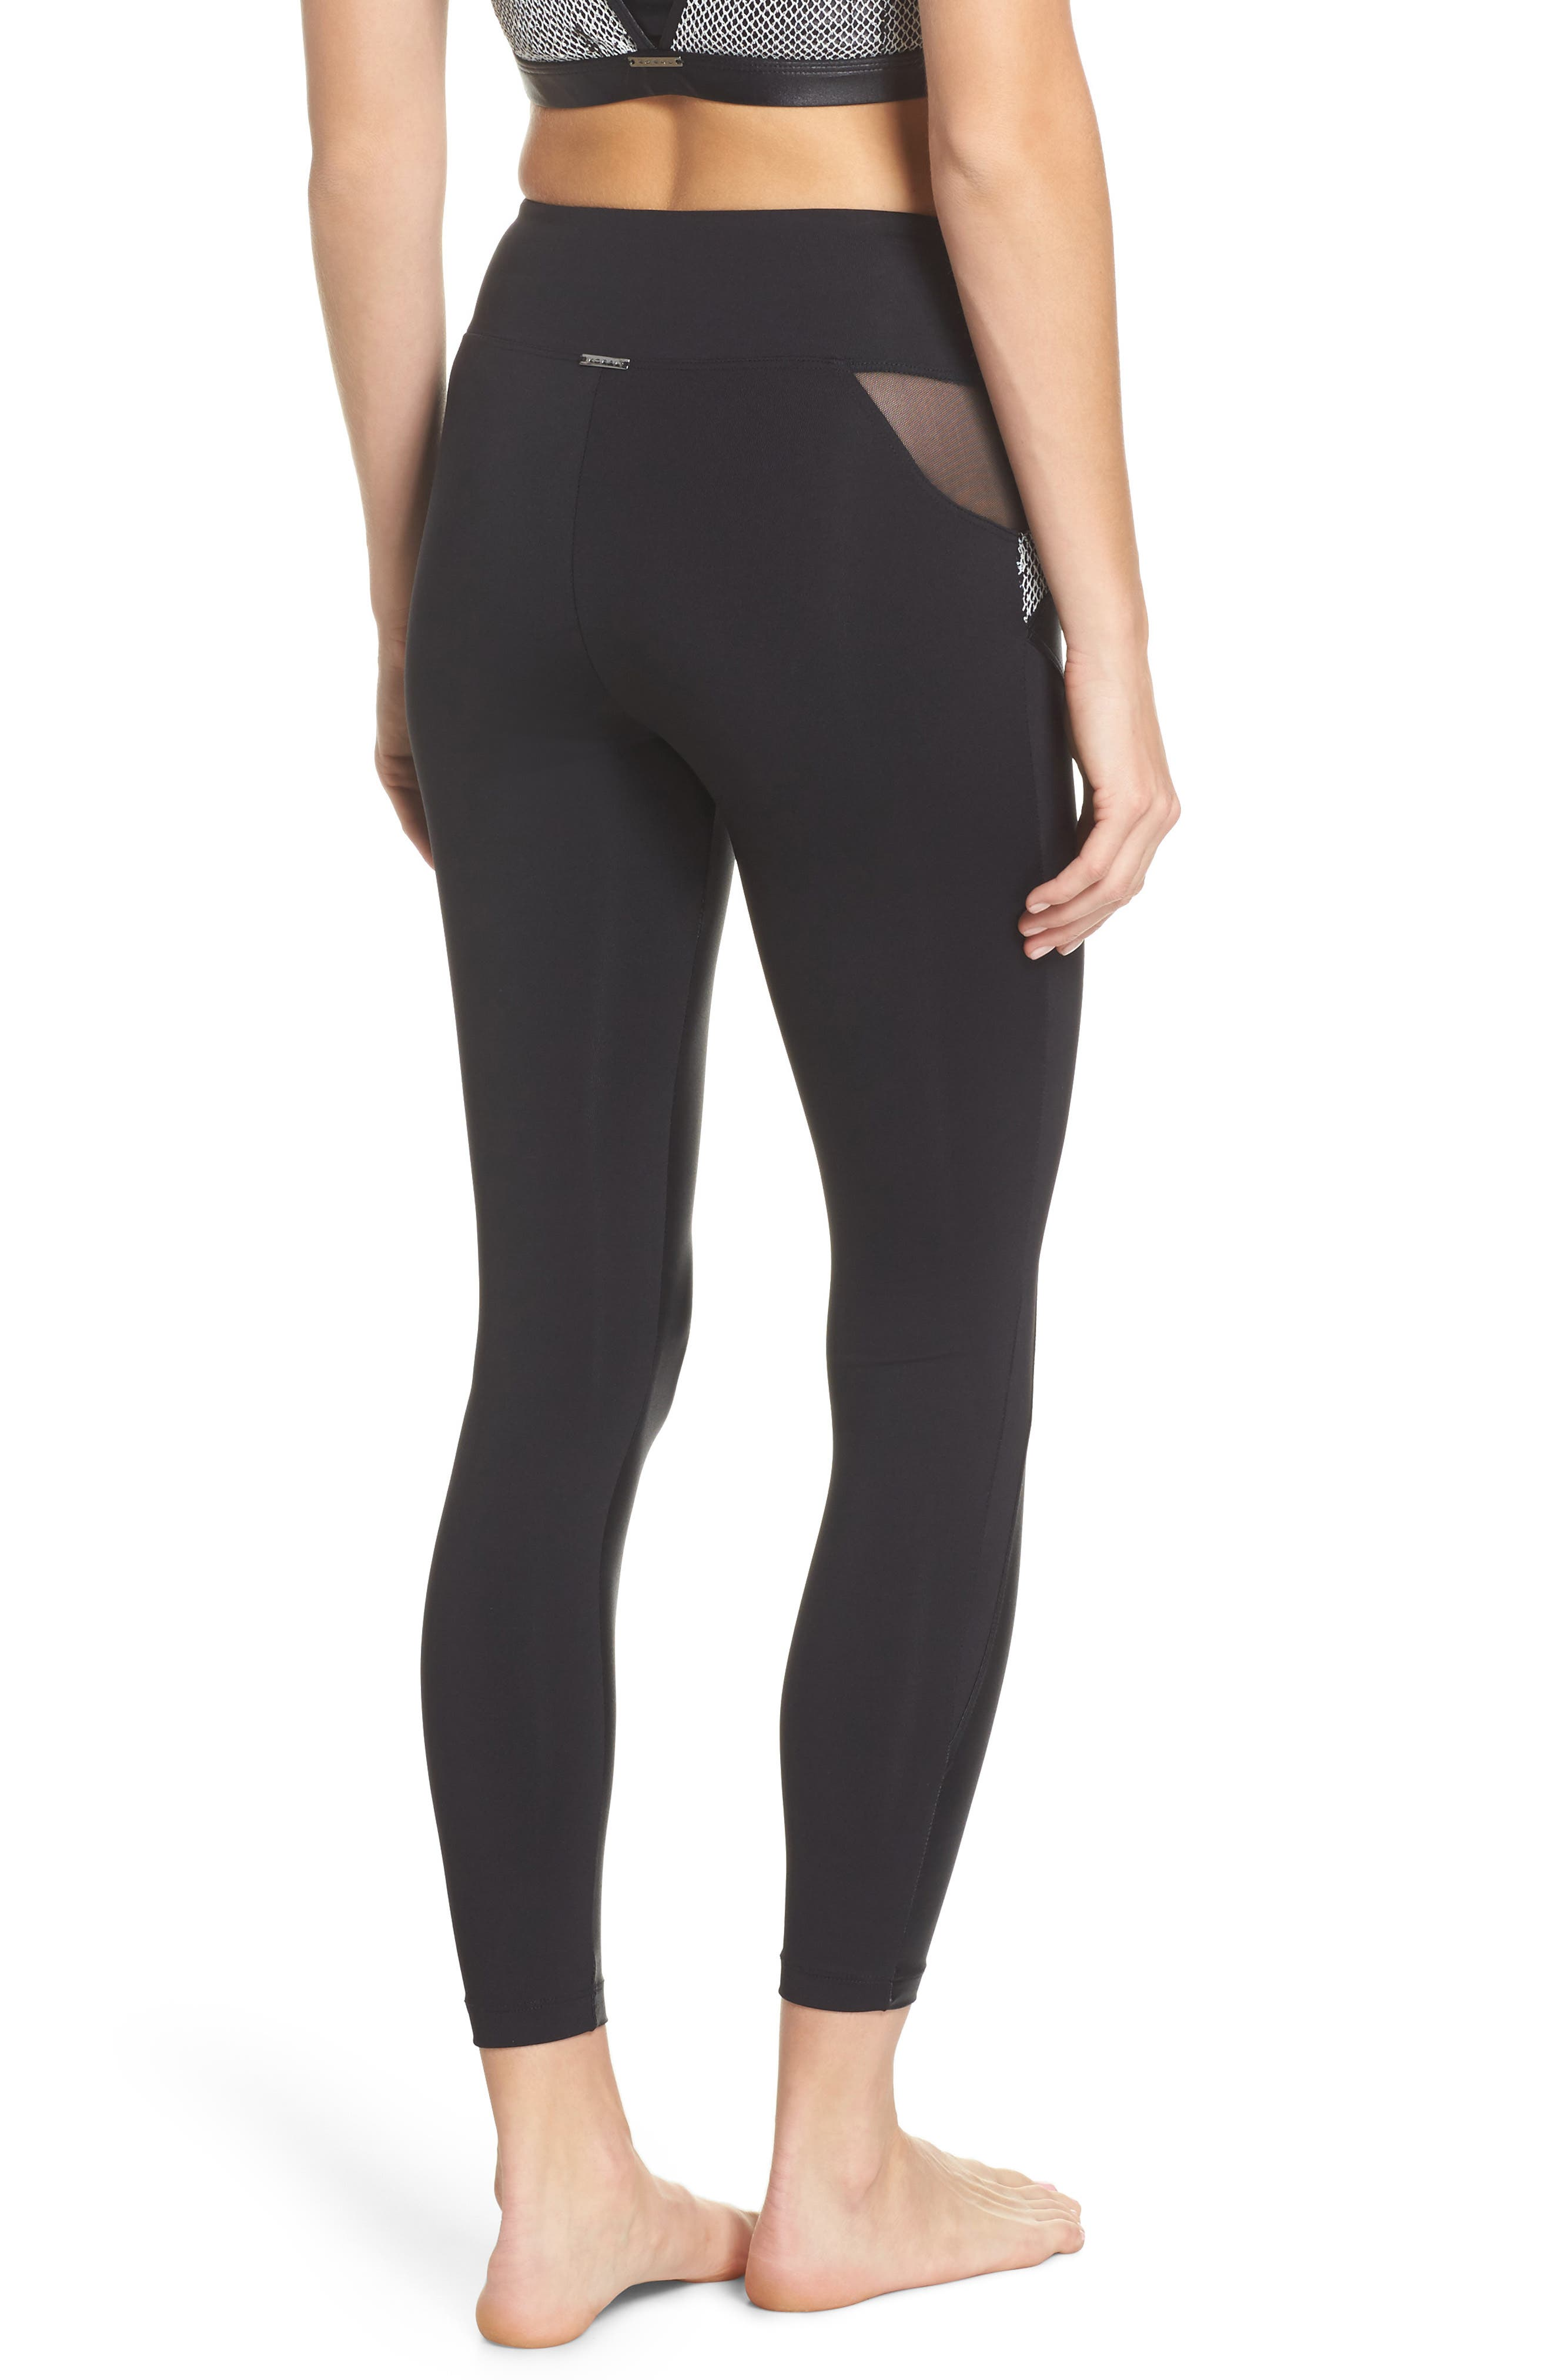 Waves High Waist Leggings,                             Alternate thumbnail 2, color,                             001